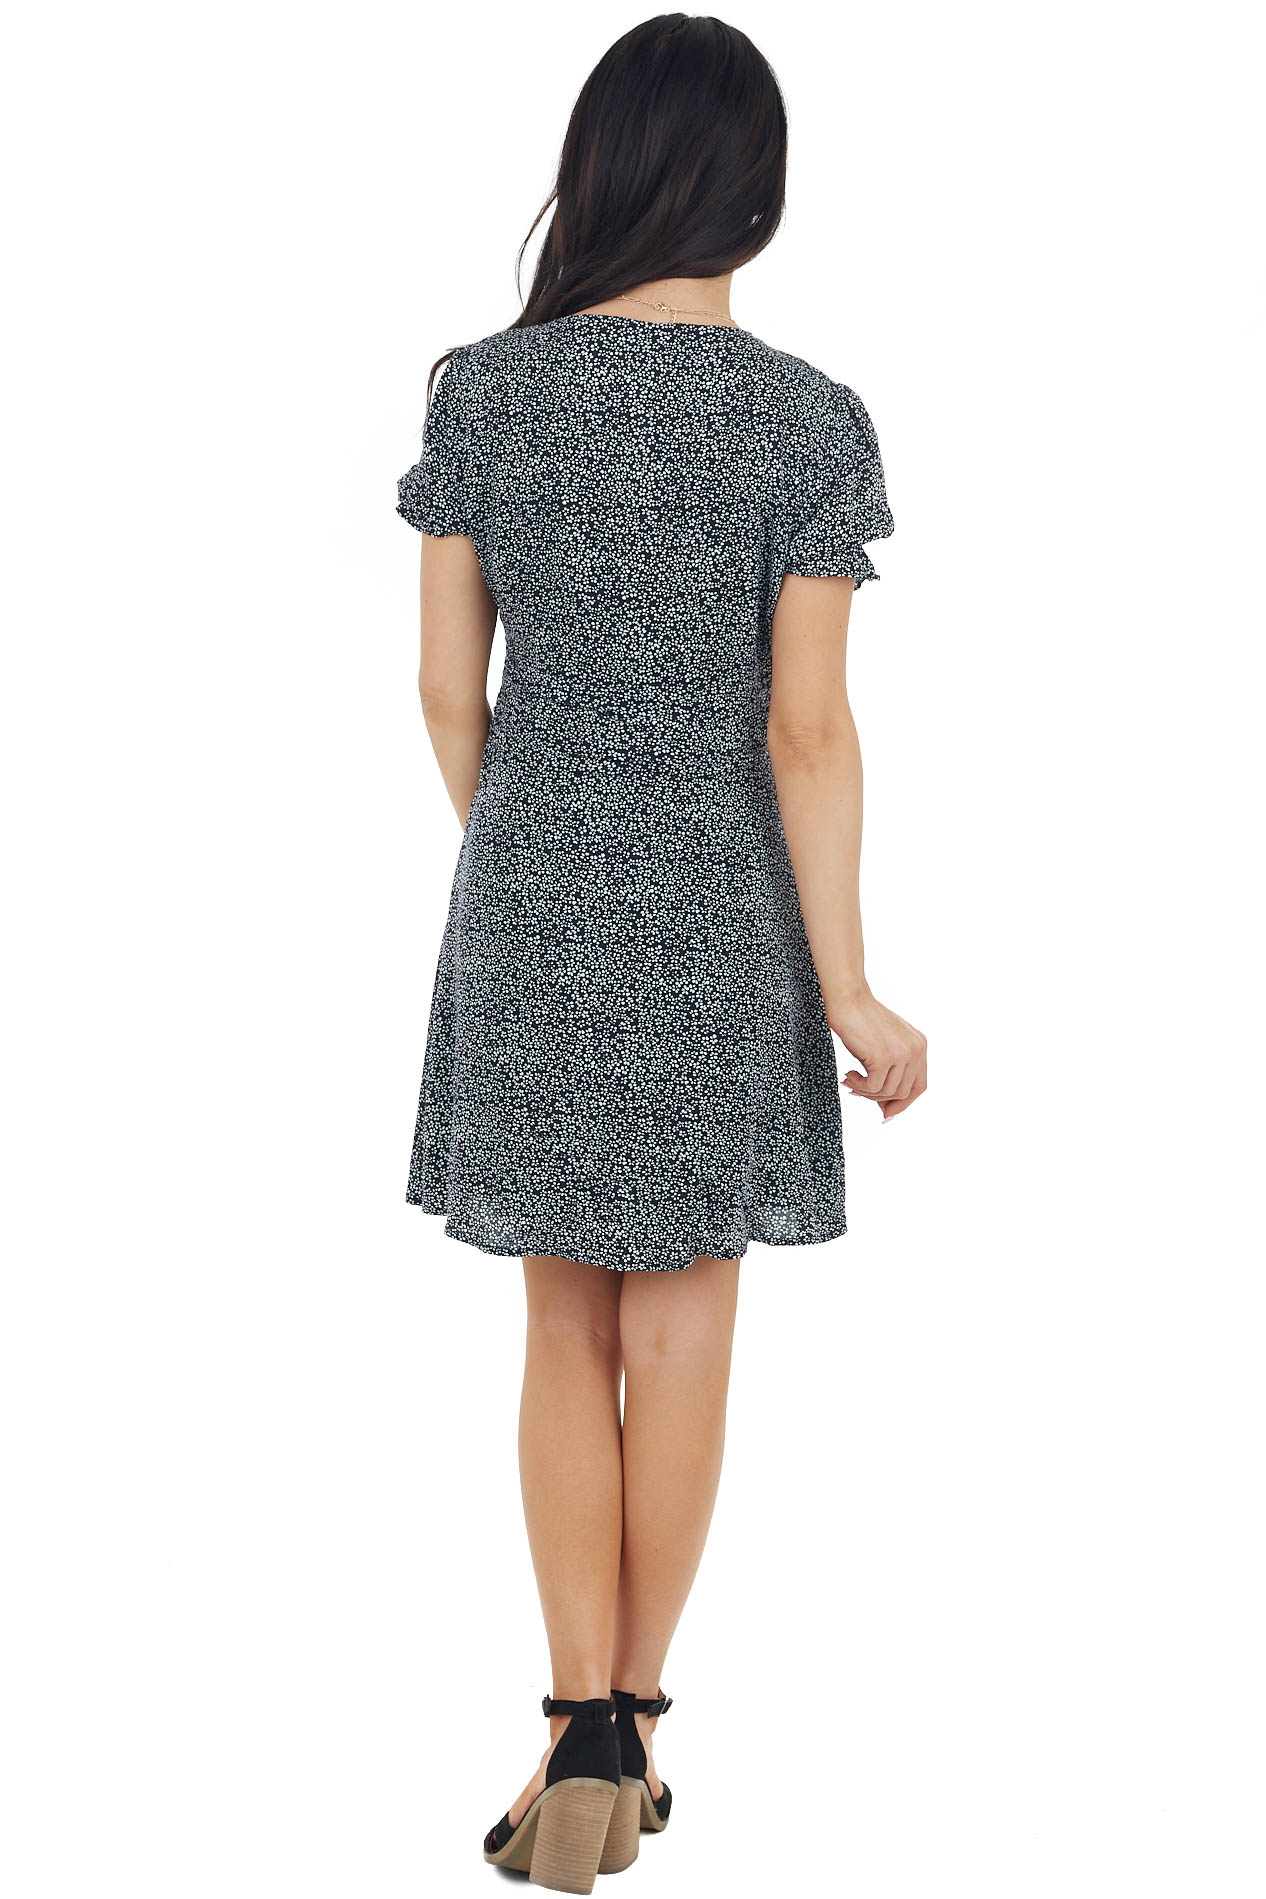 Black Floral Print Mini Woven Dress with Button Detail